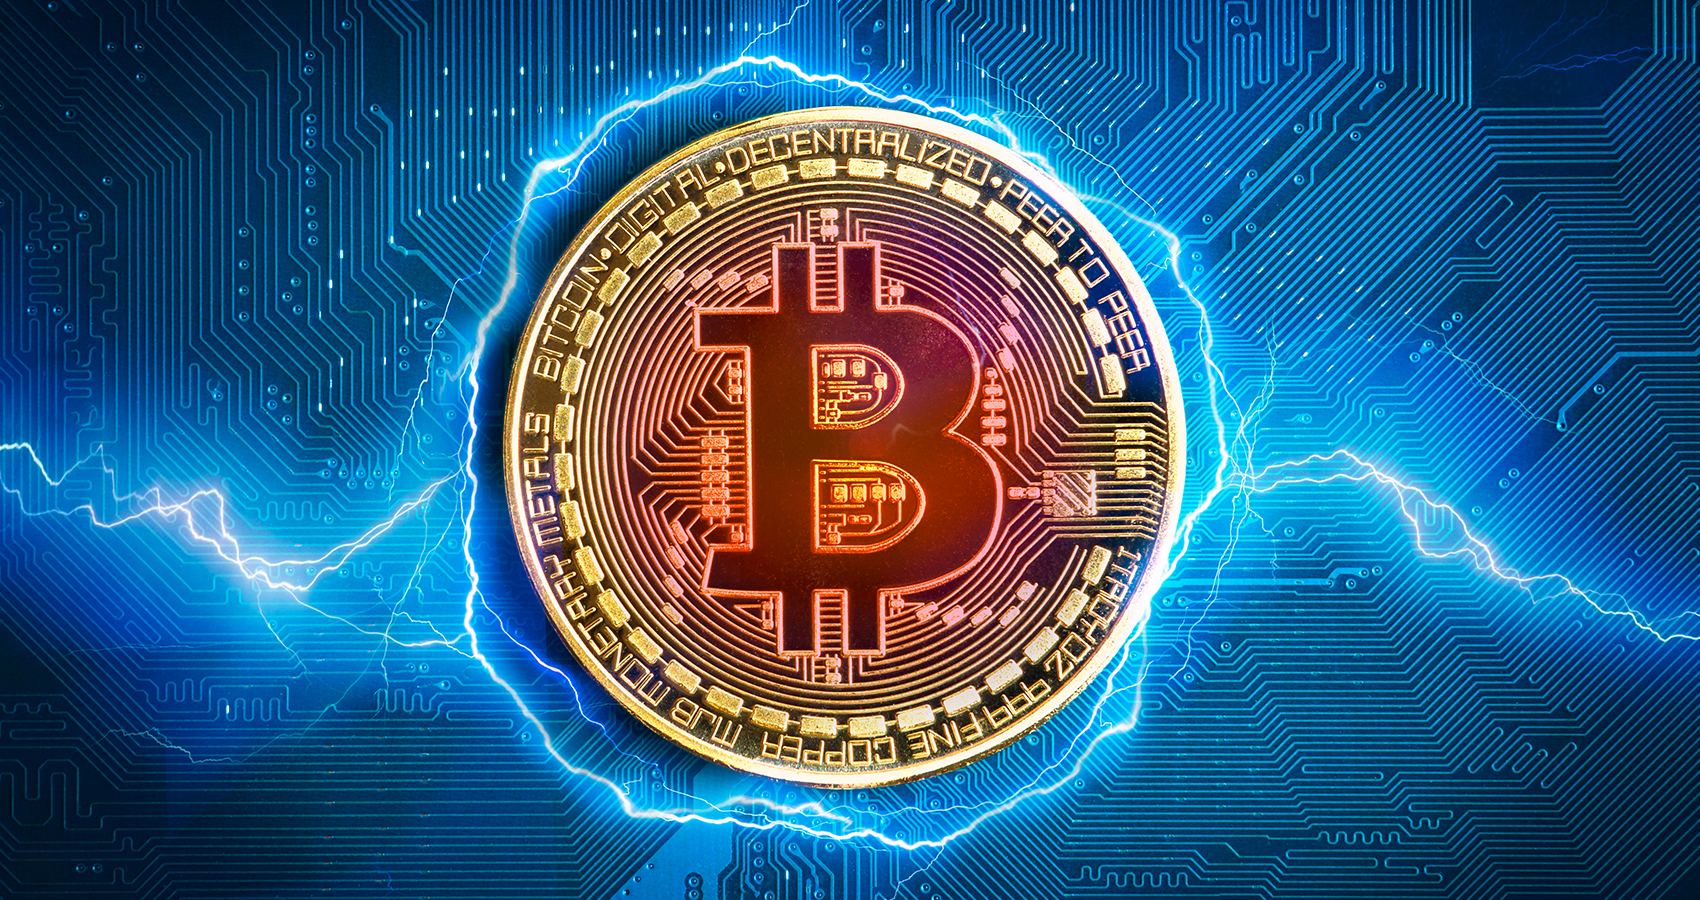 A brief history of bitcoin and blockchain